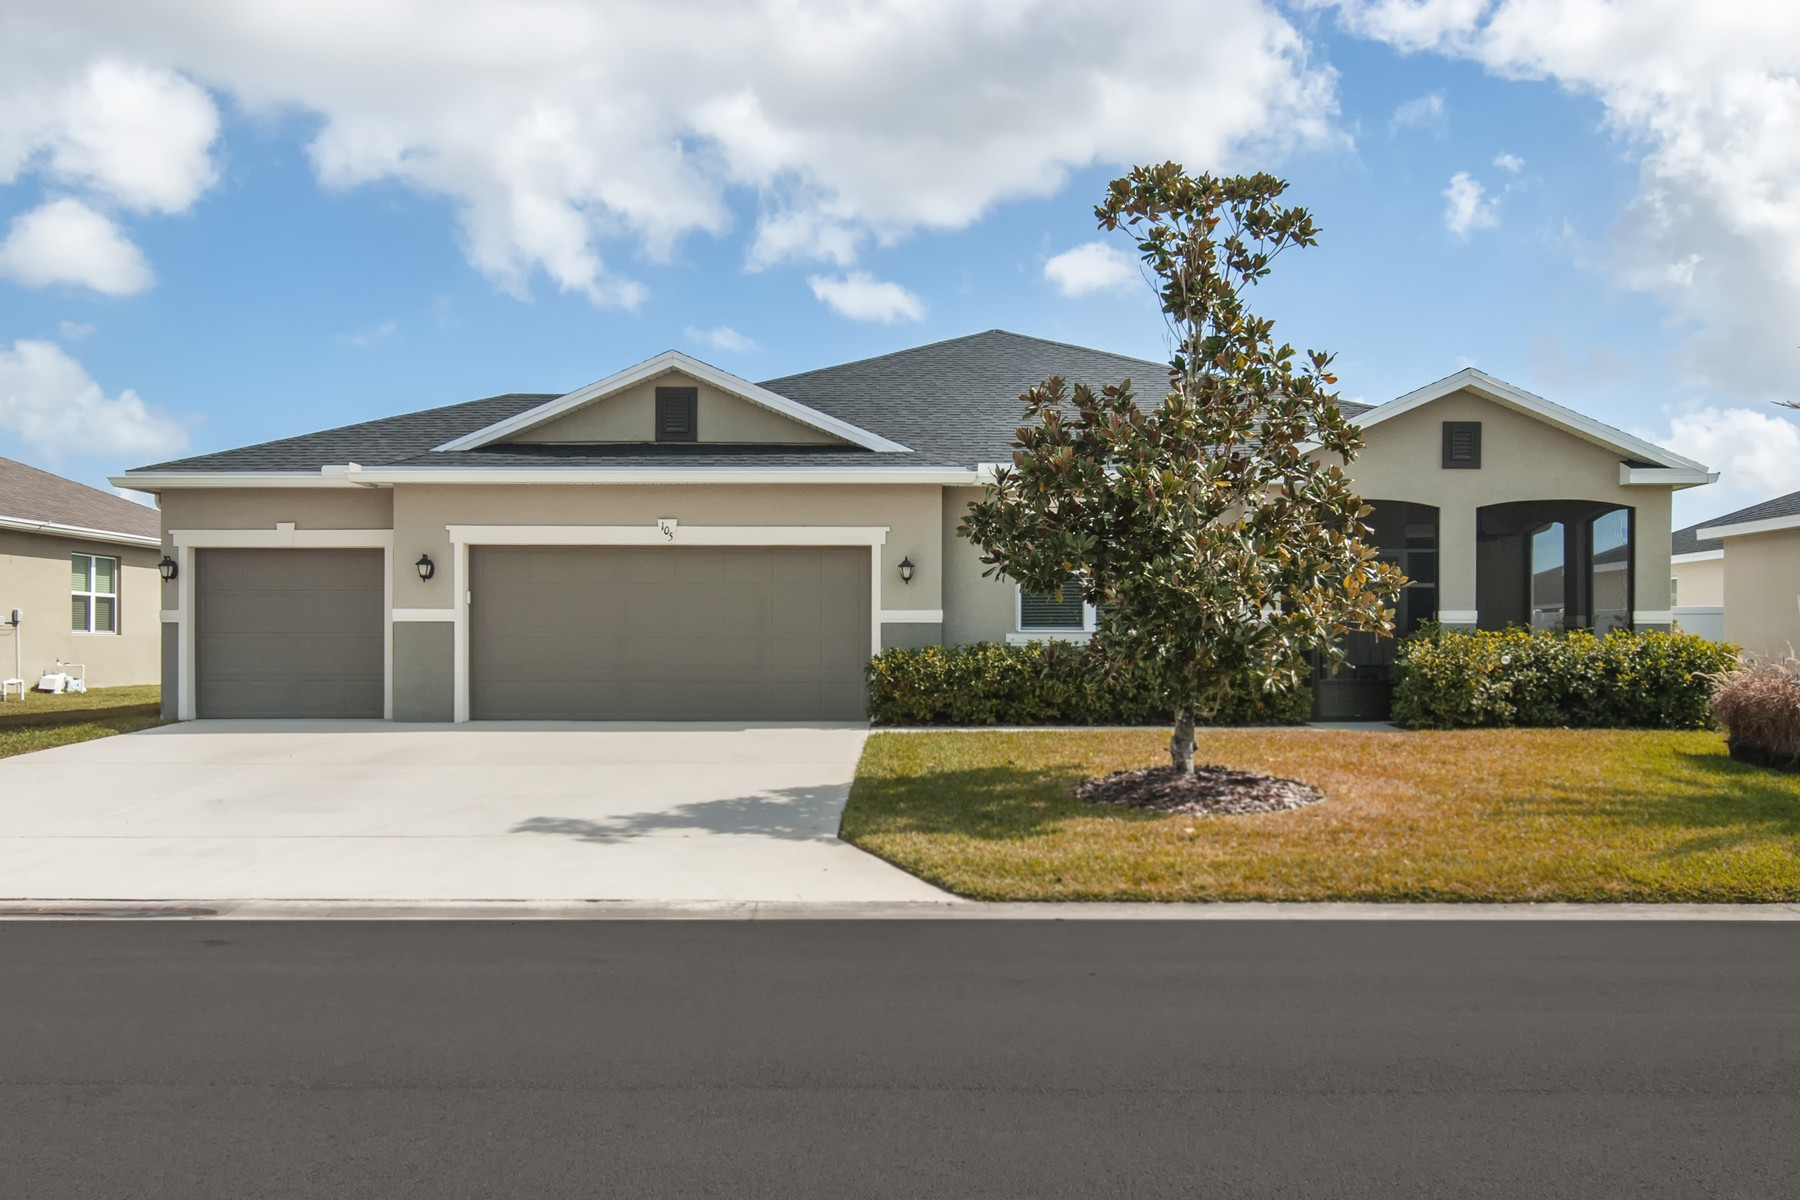 Single Family Home for Sale at Fantastic Home That Shows Like a Model! 105 Salazar Lane Sebastian, Florida 32958 United States